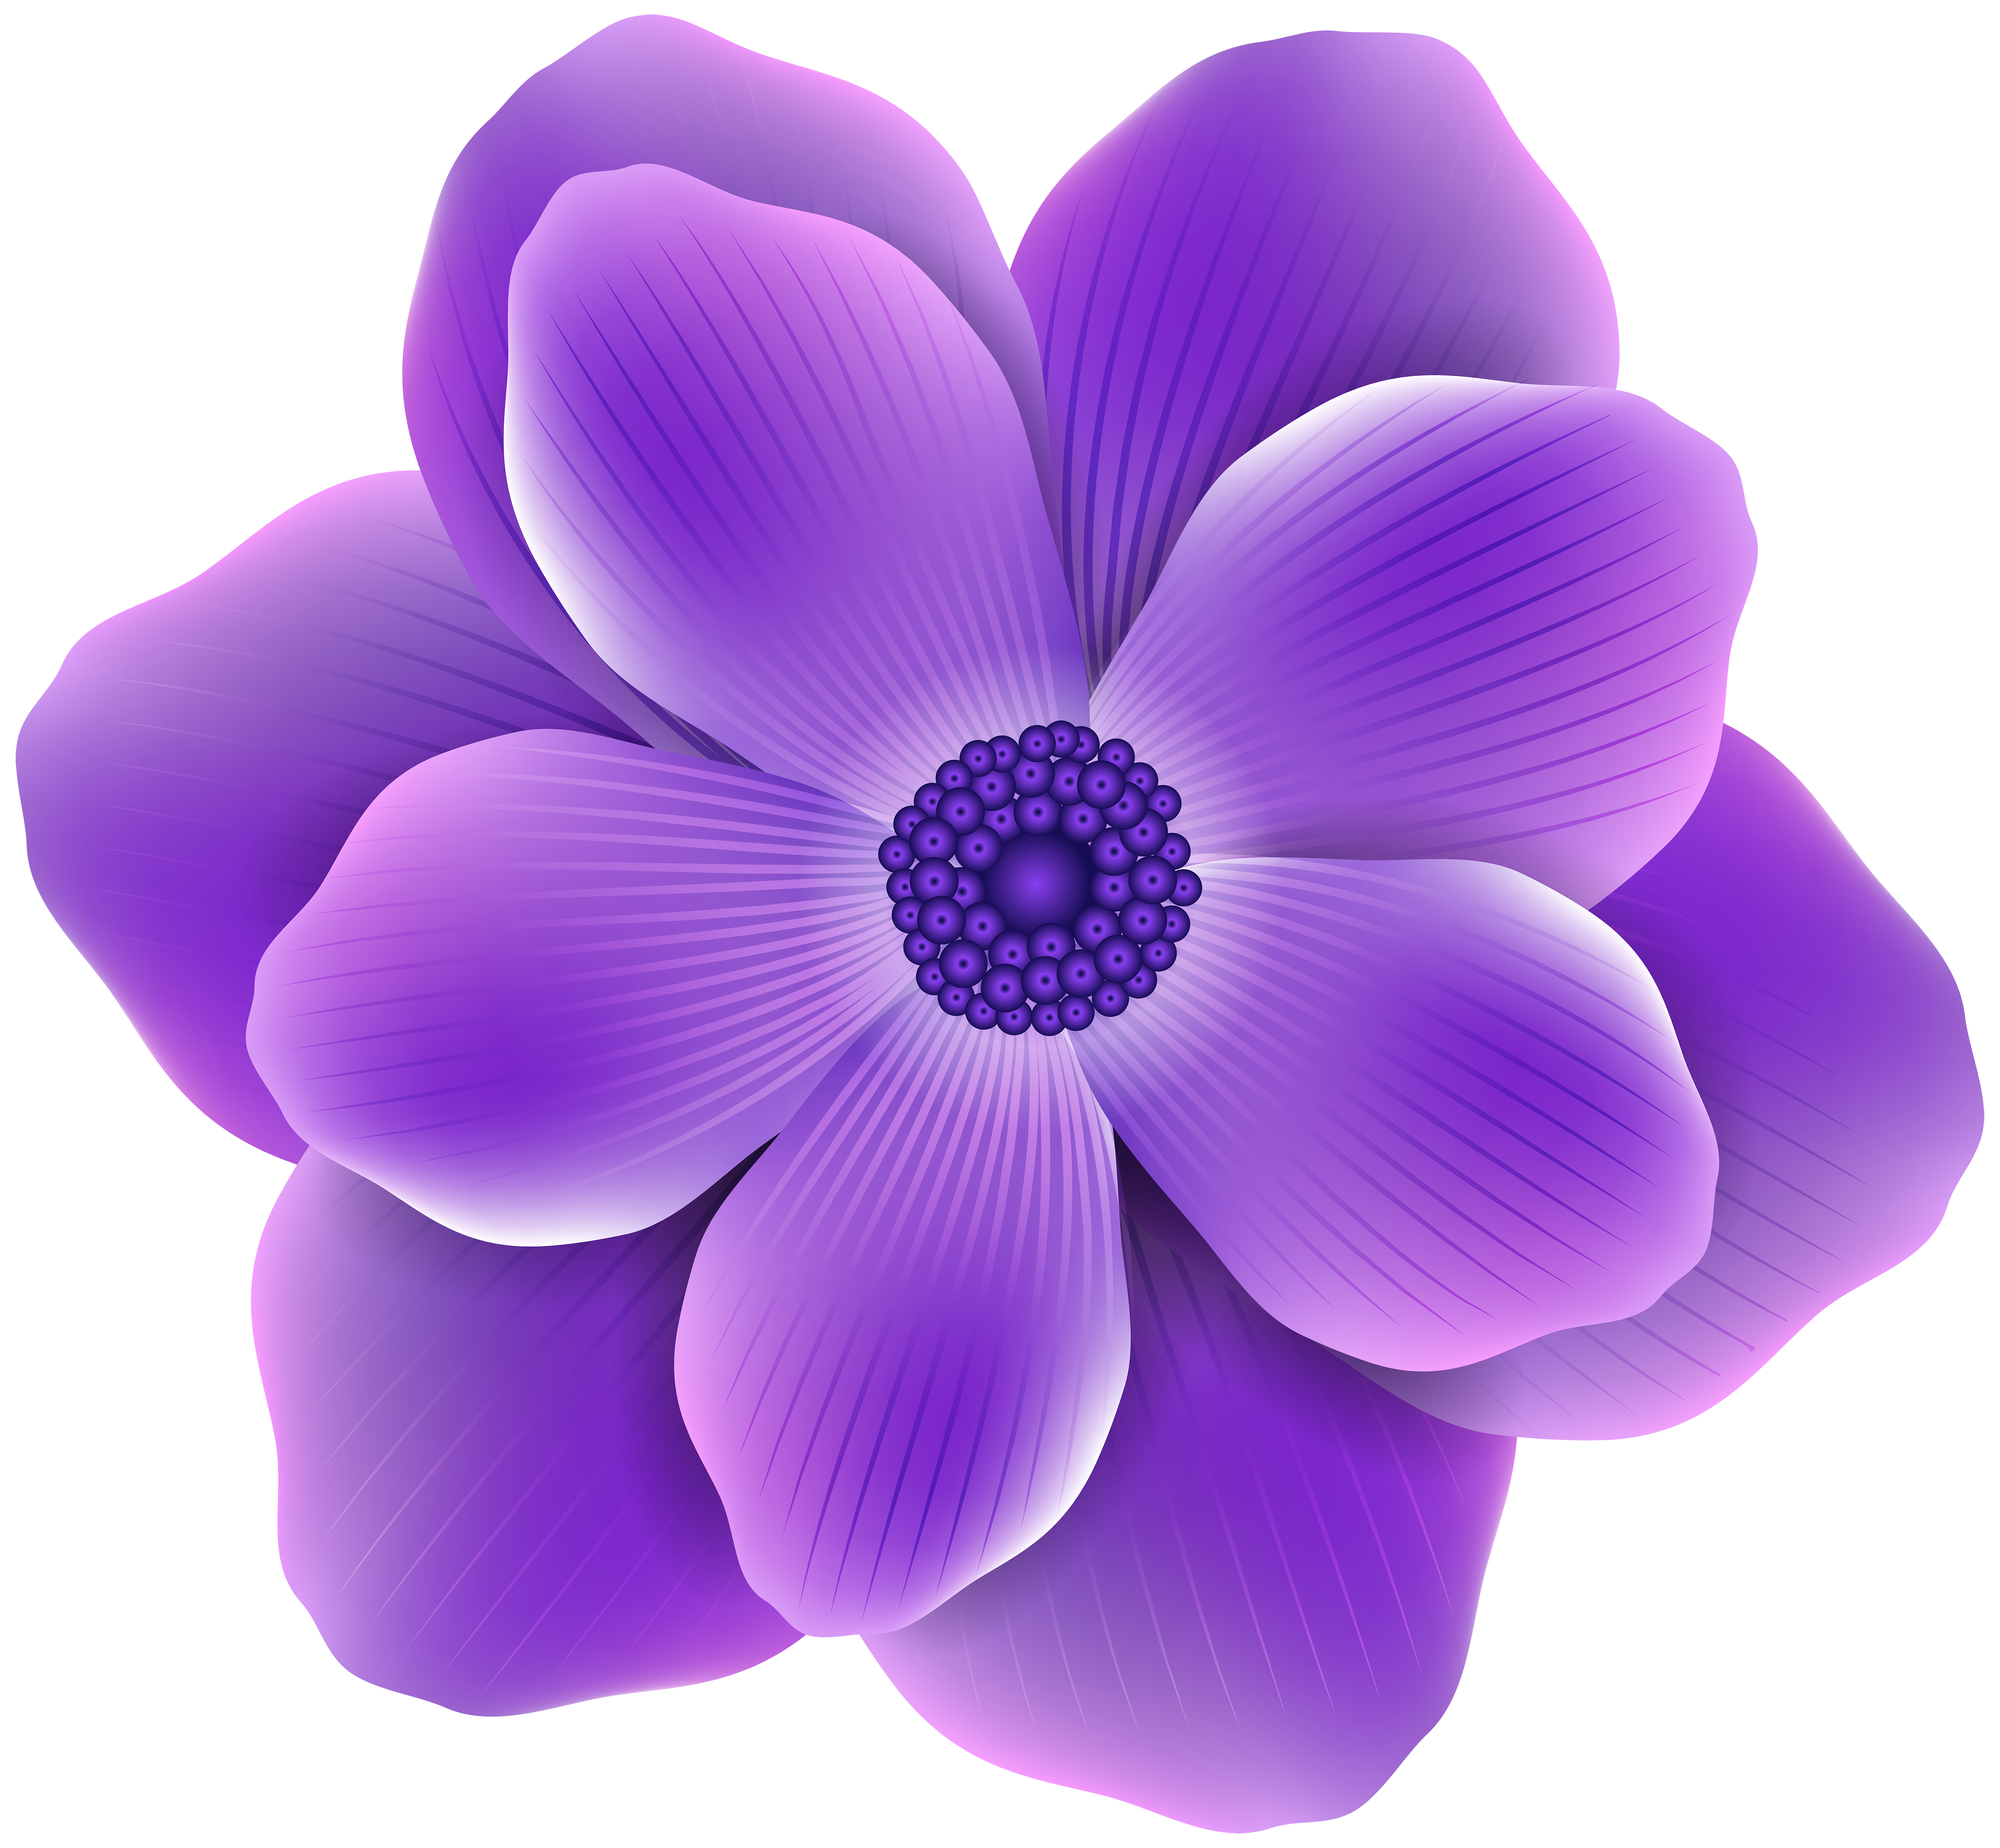 Purpleflowers clipart banner freeuse library Purple Flower PNG Clip Art Image | Gallery Yopriceville ... banner freeuse library